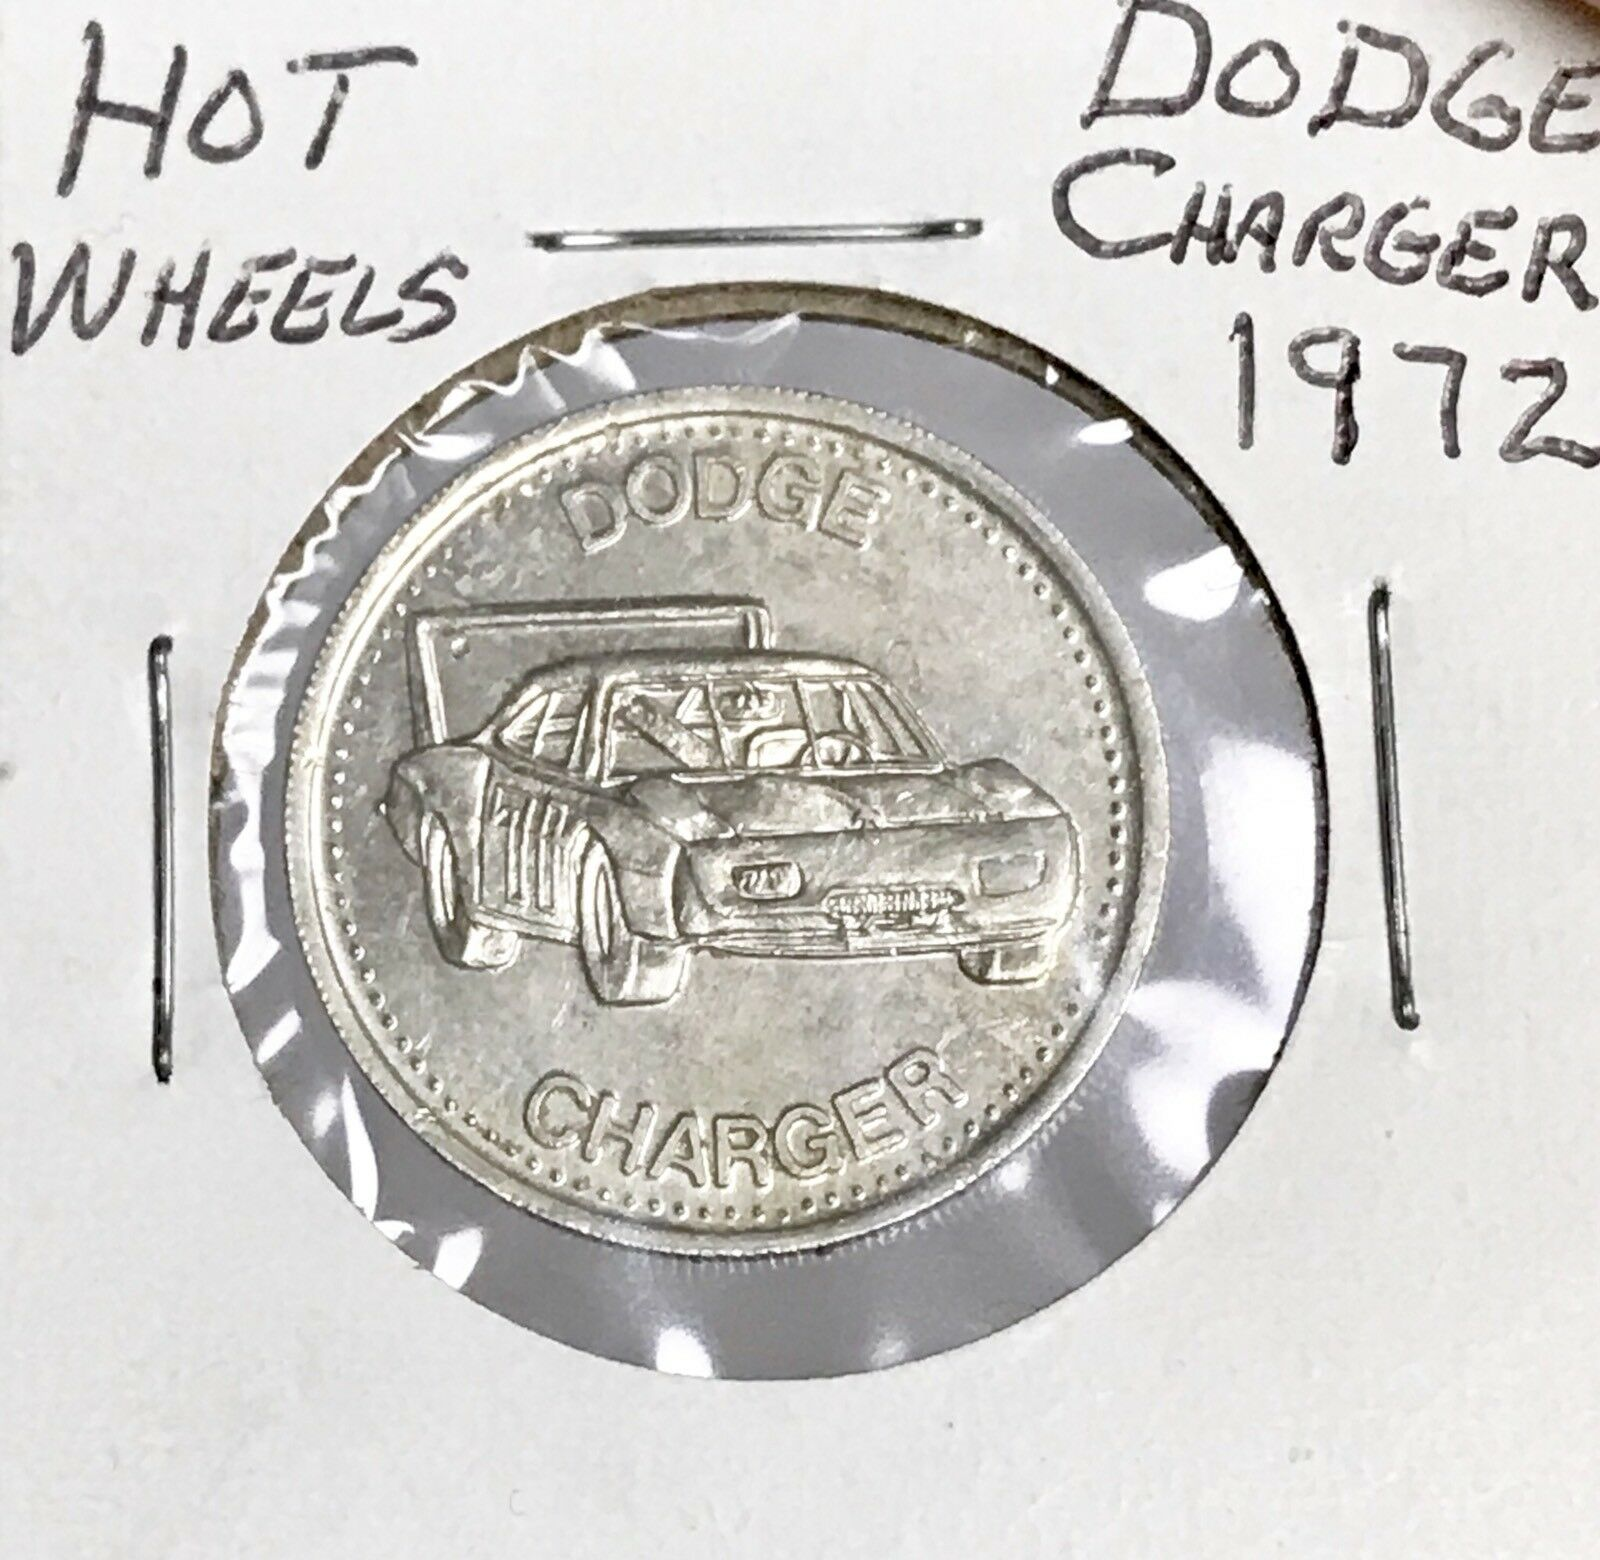 Hot Wheels Redline 1972 Dodge Charger Shell Coin Game Token